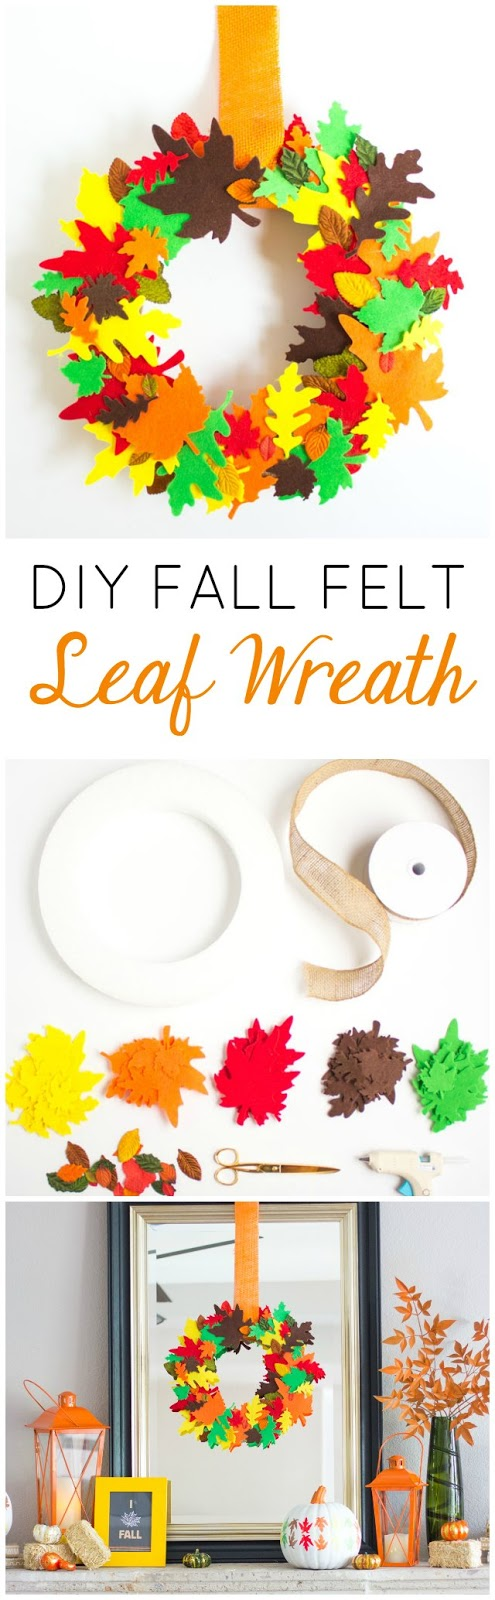 Make this gorgeous DIY fall leaf wreath in under an hour with pre-cut felt leaves!